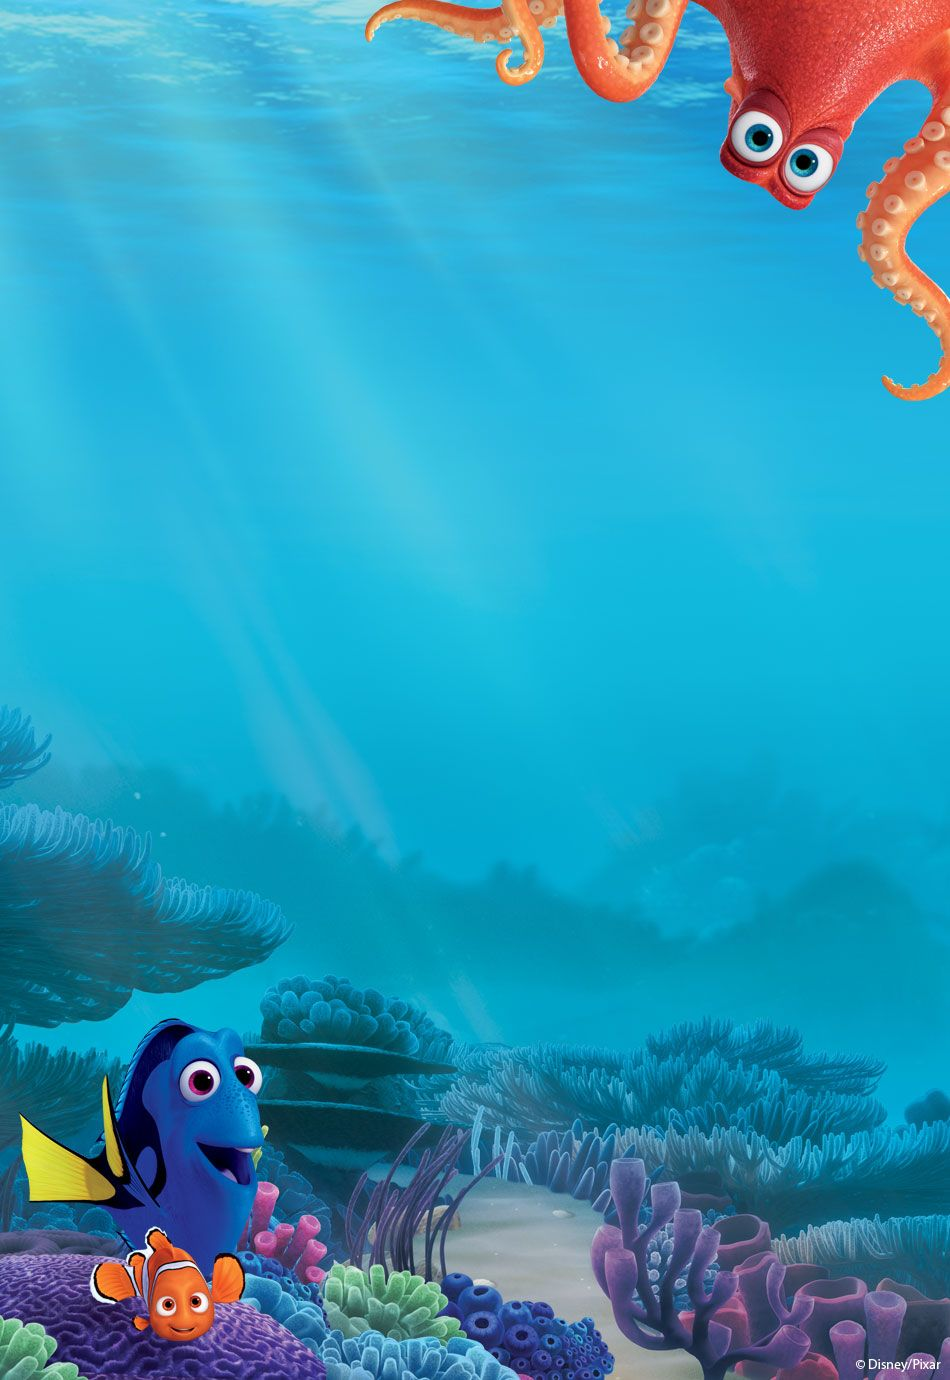 Finding dory movie poster wallpapers finding dory - Movie poster wallpaper ...